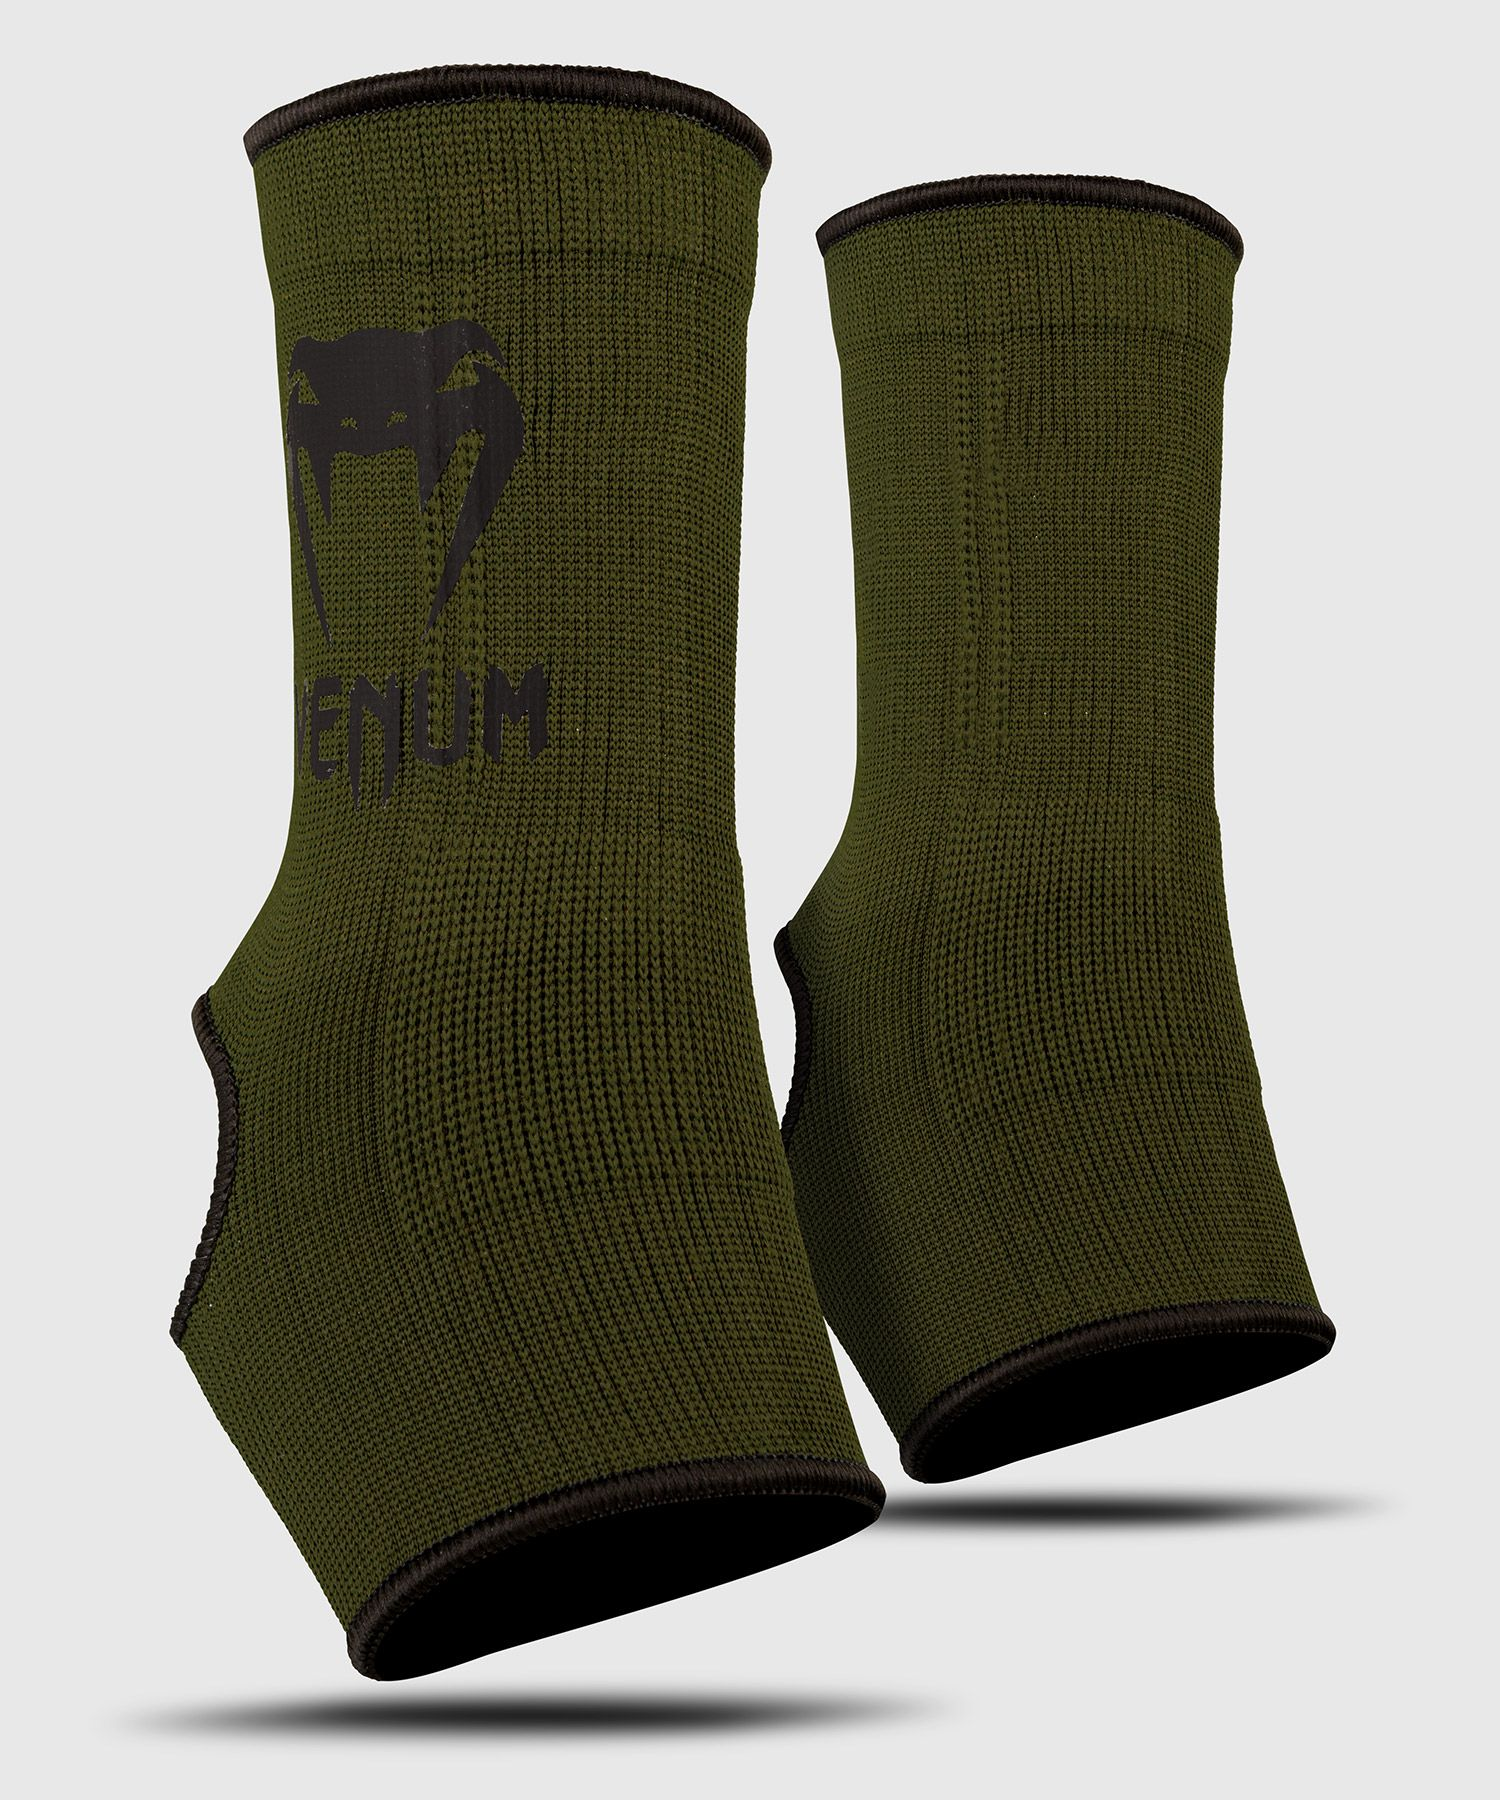 Venum Kontact Ankle Support Guard - Khaki/Black